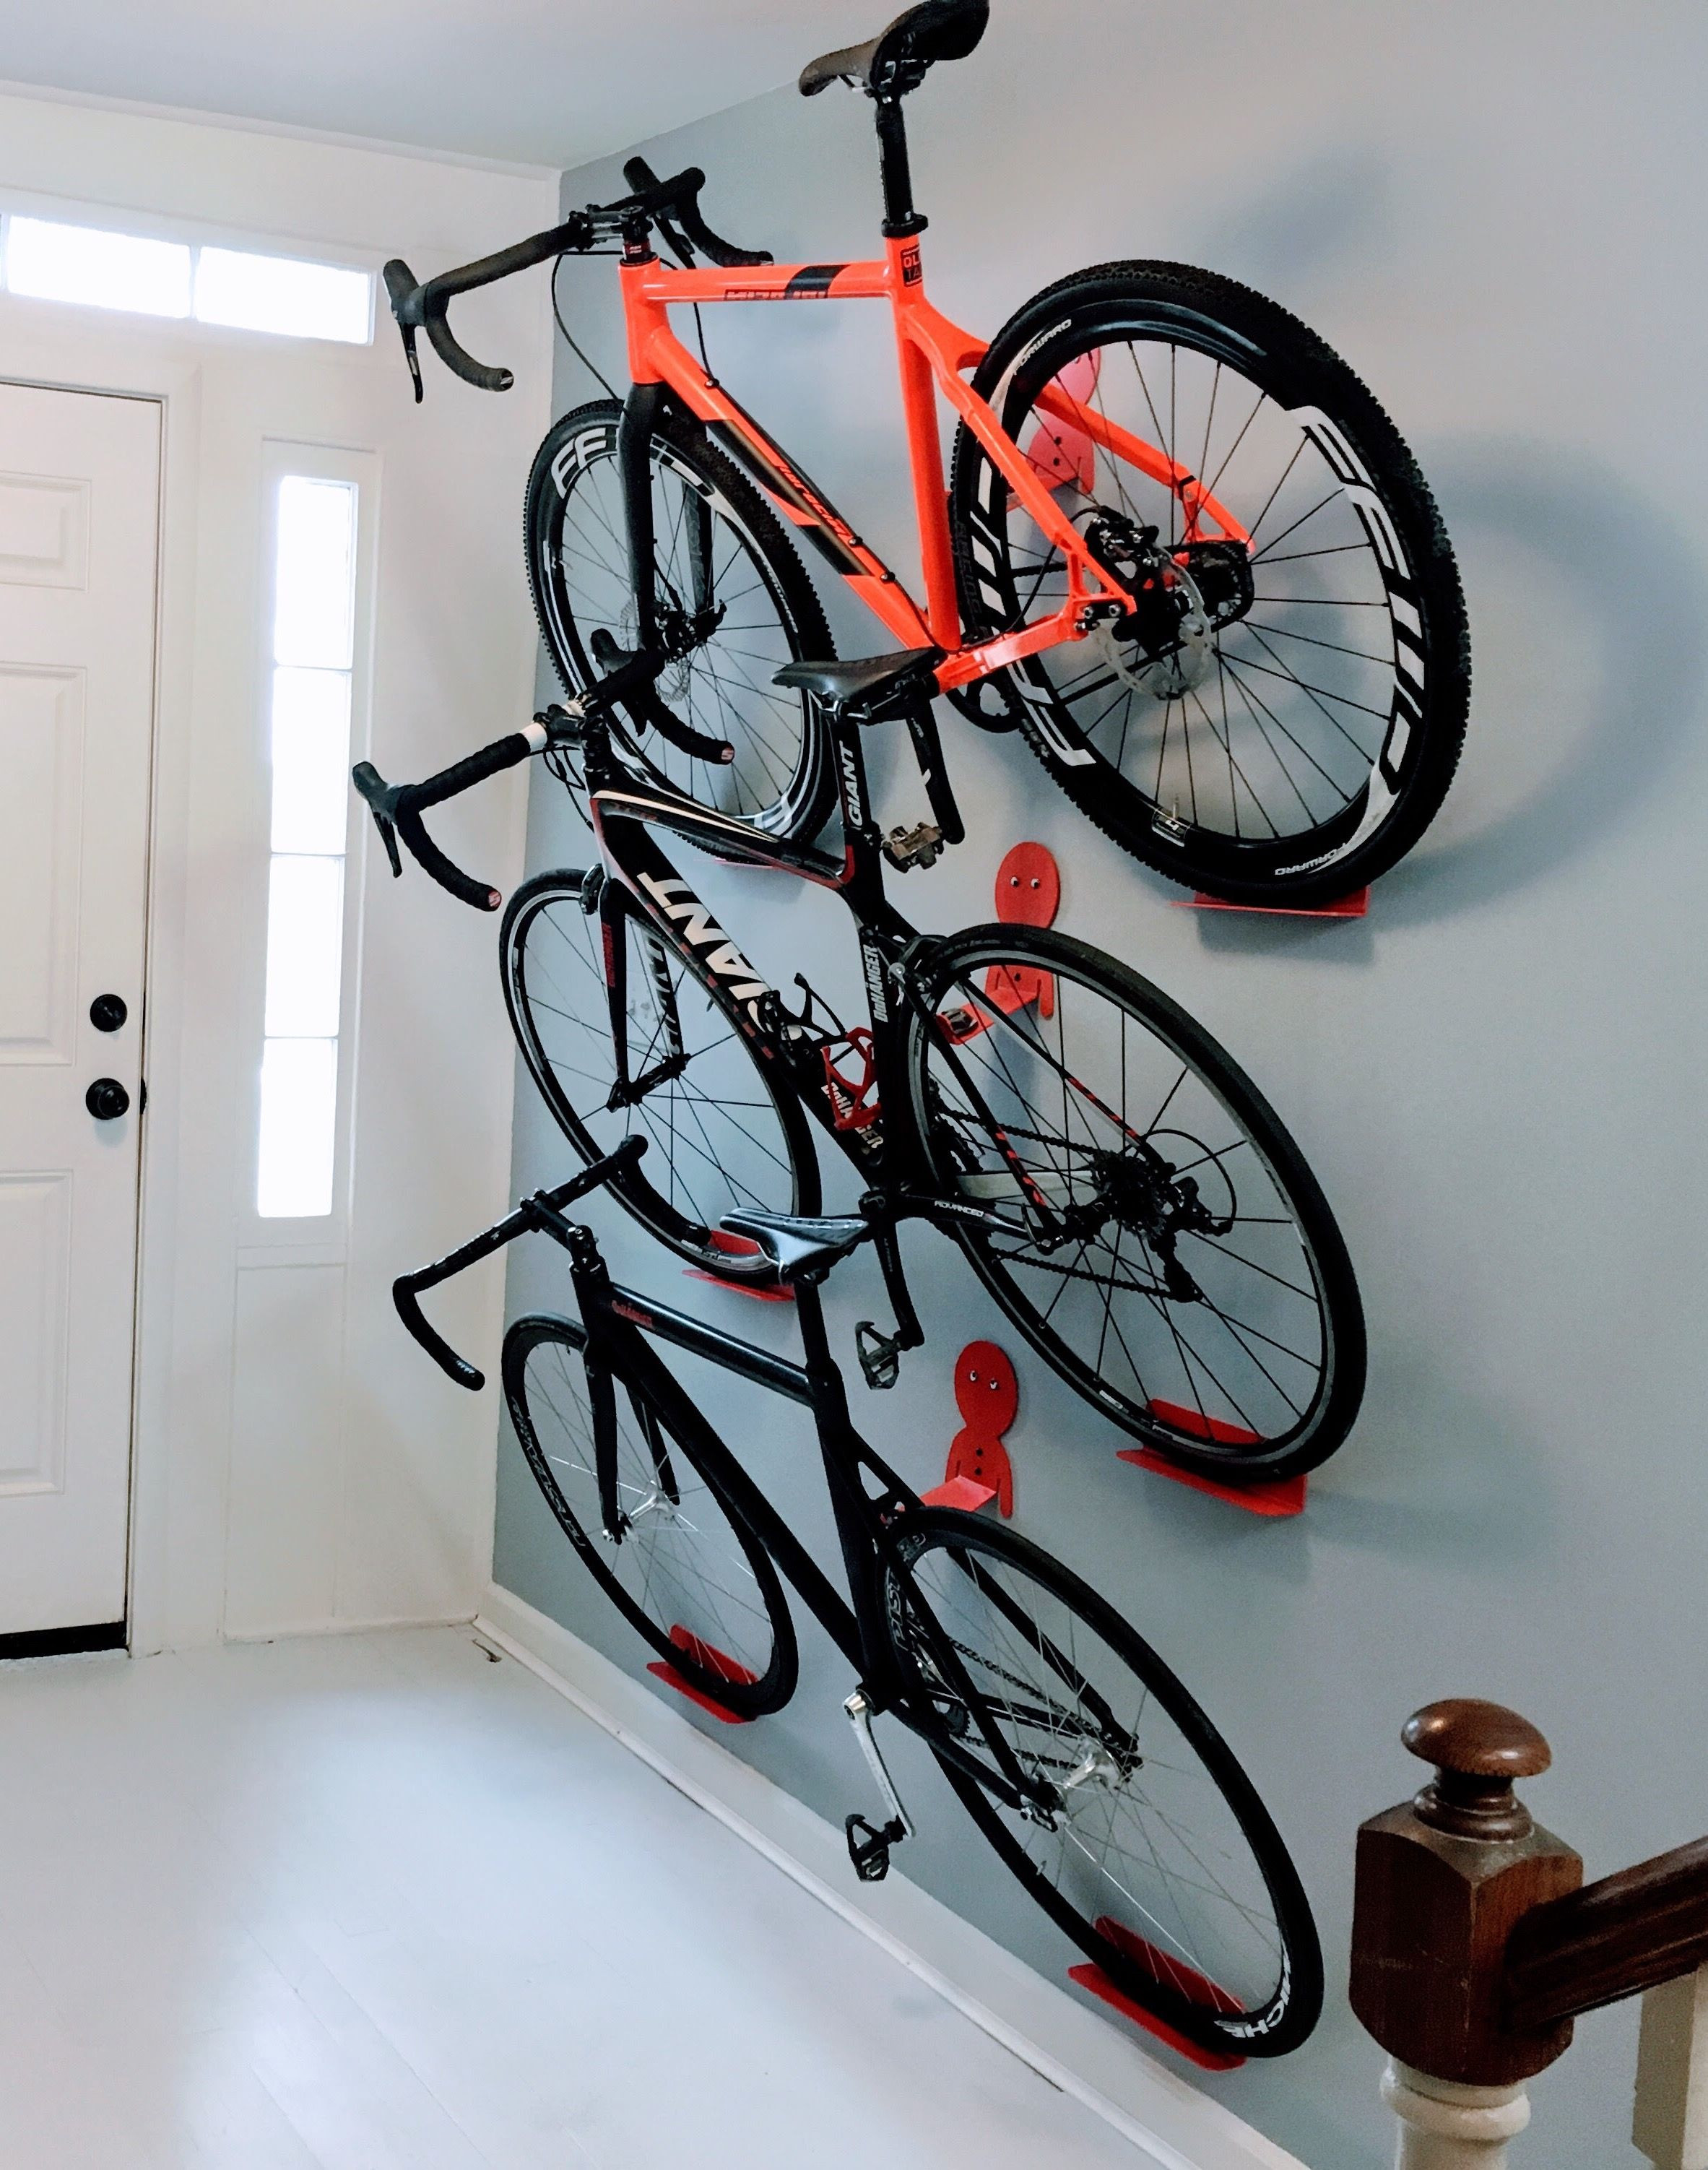 Best ideas about Bike Wall Mount DIY . Save or Pin Multiple bikes hanging rack system DaHANGER Dan pedal Now.